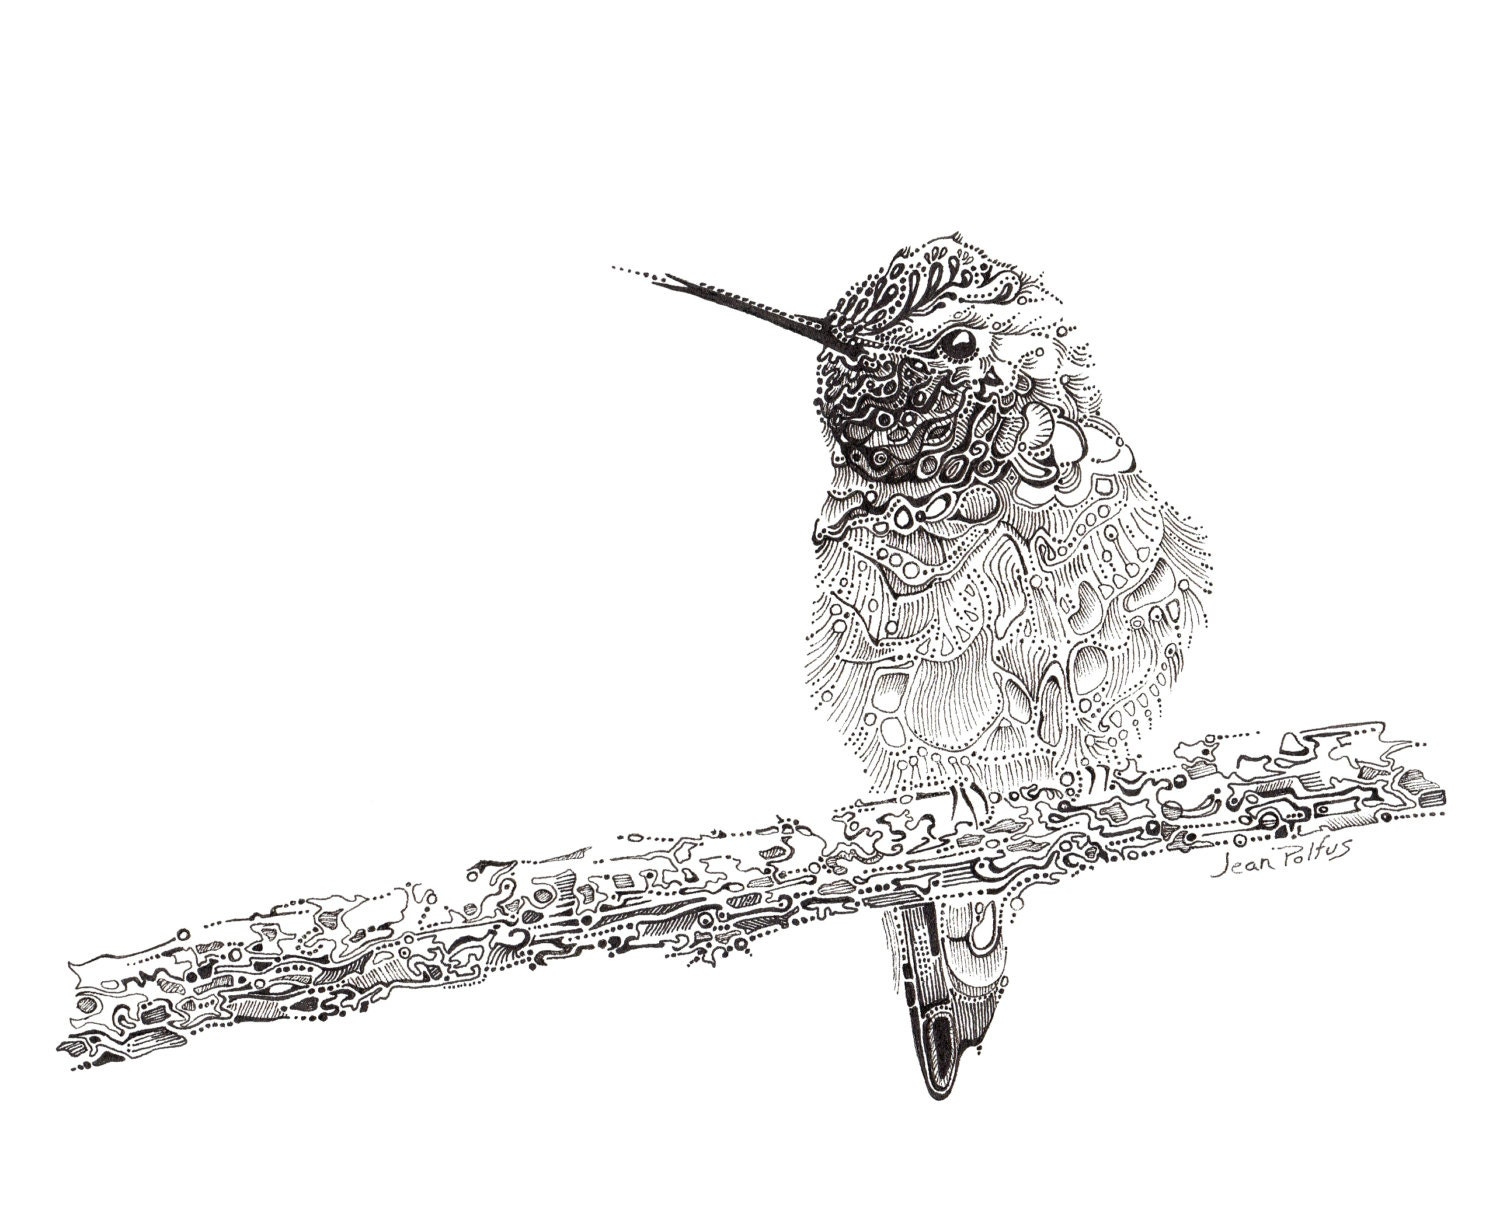 Fine Line Drawing Artists : Hummingbird illustration fine line artwork black and white